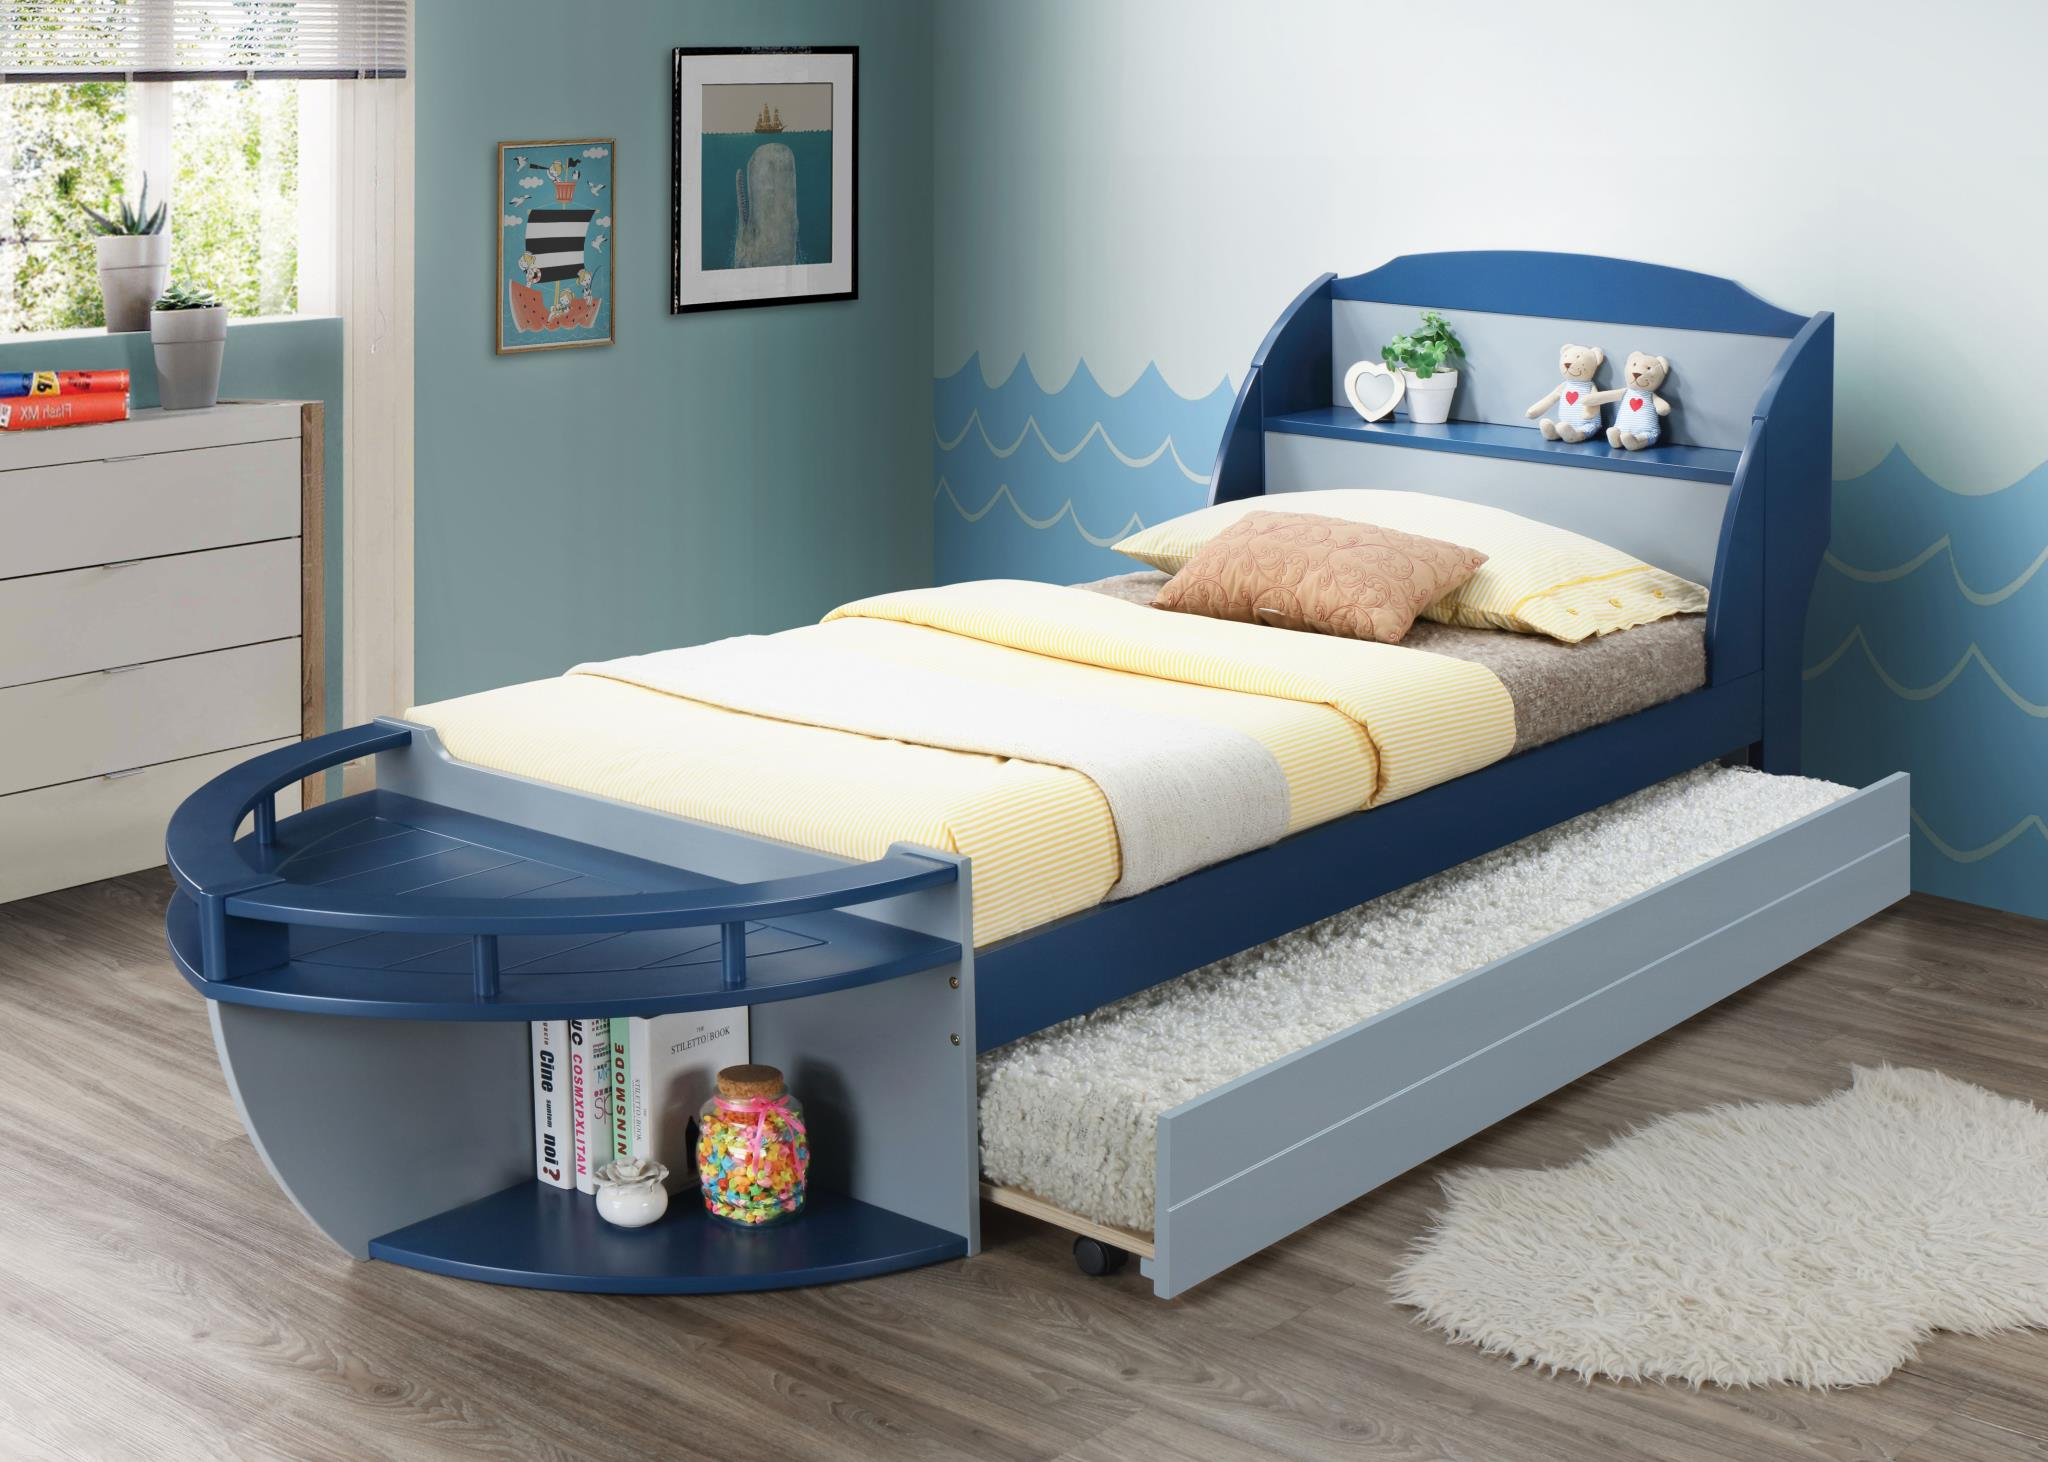 Boat Shaped Bed w/ Trundle